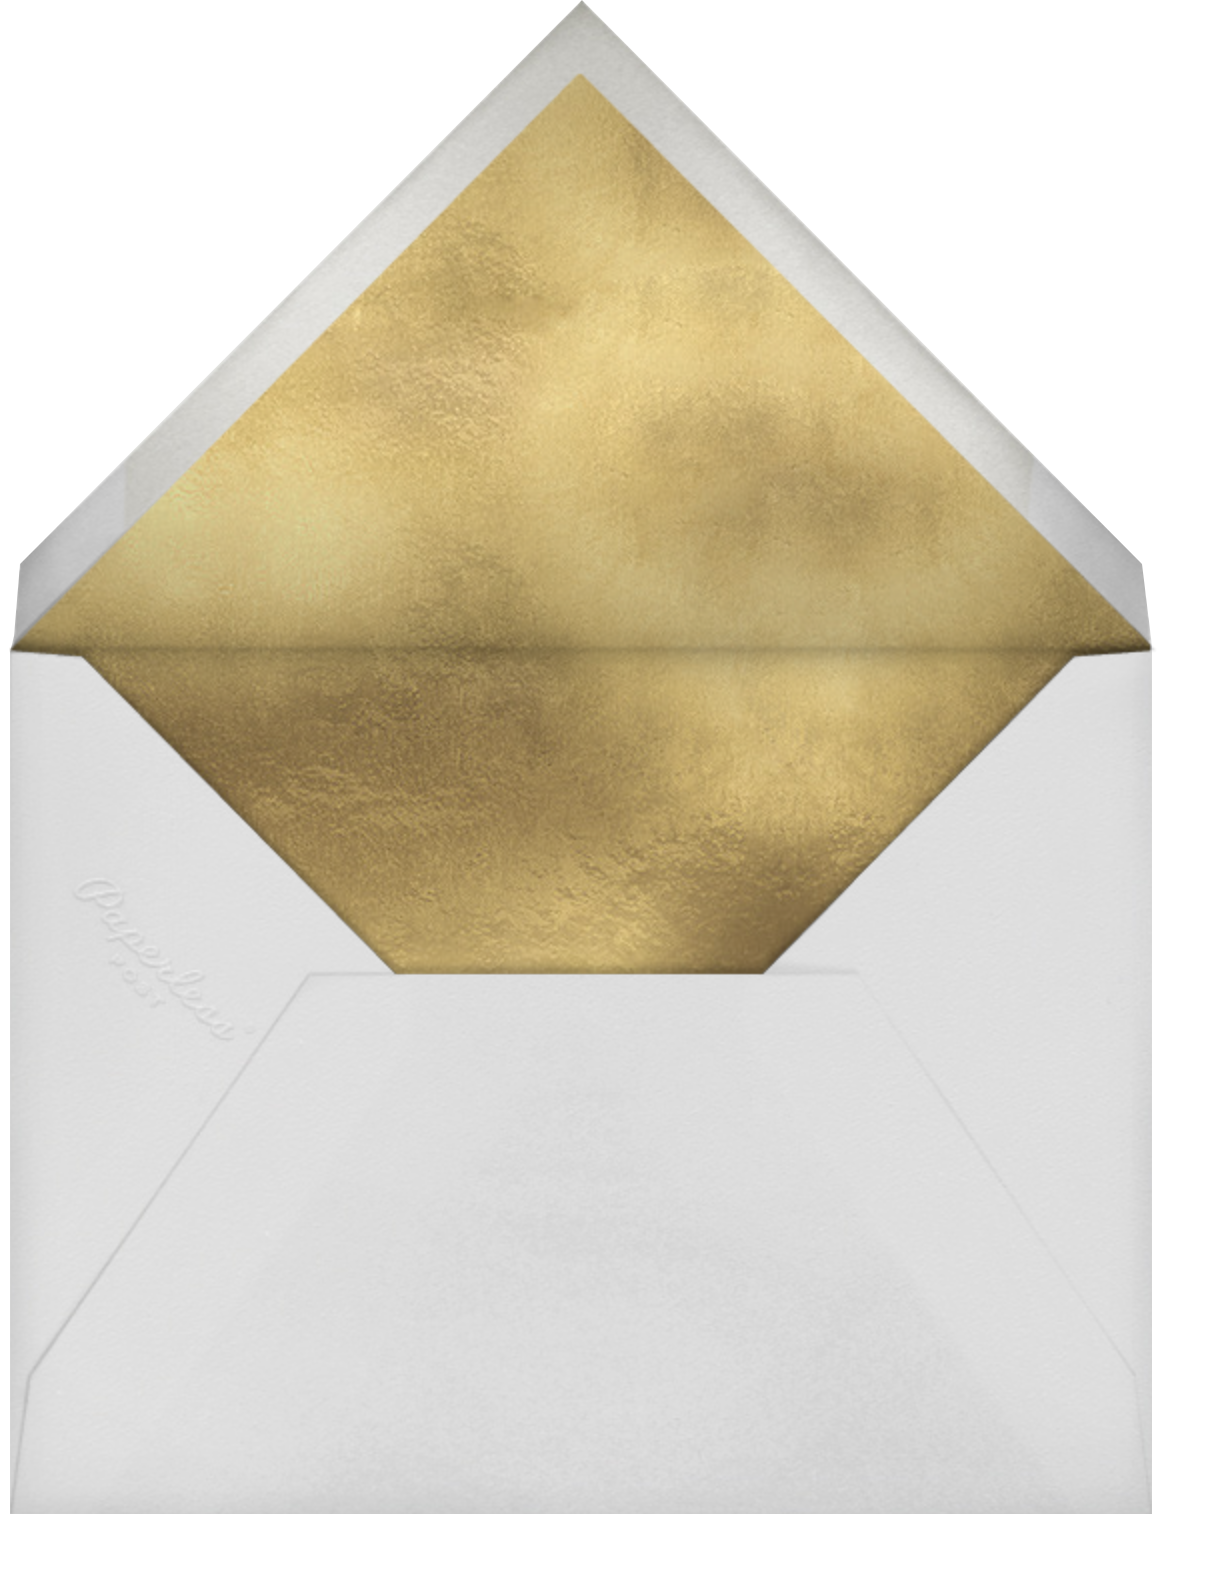 First Place - Rifle Paper Co. - Envelope